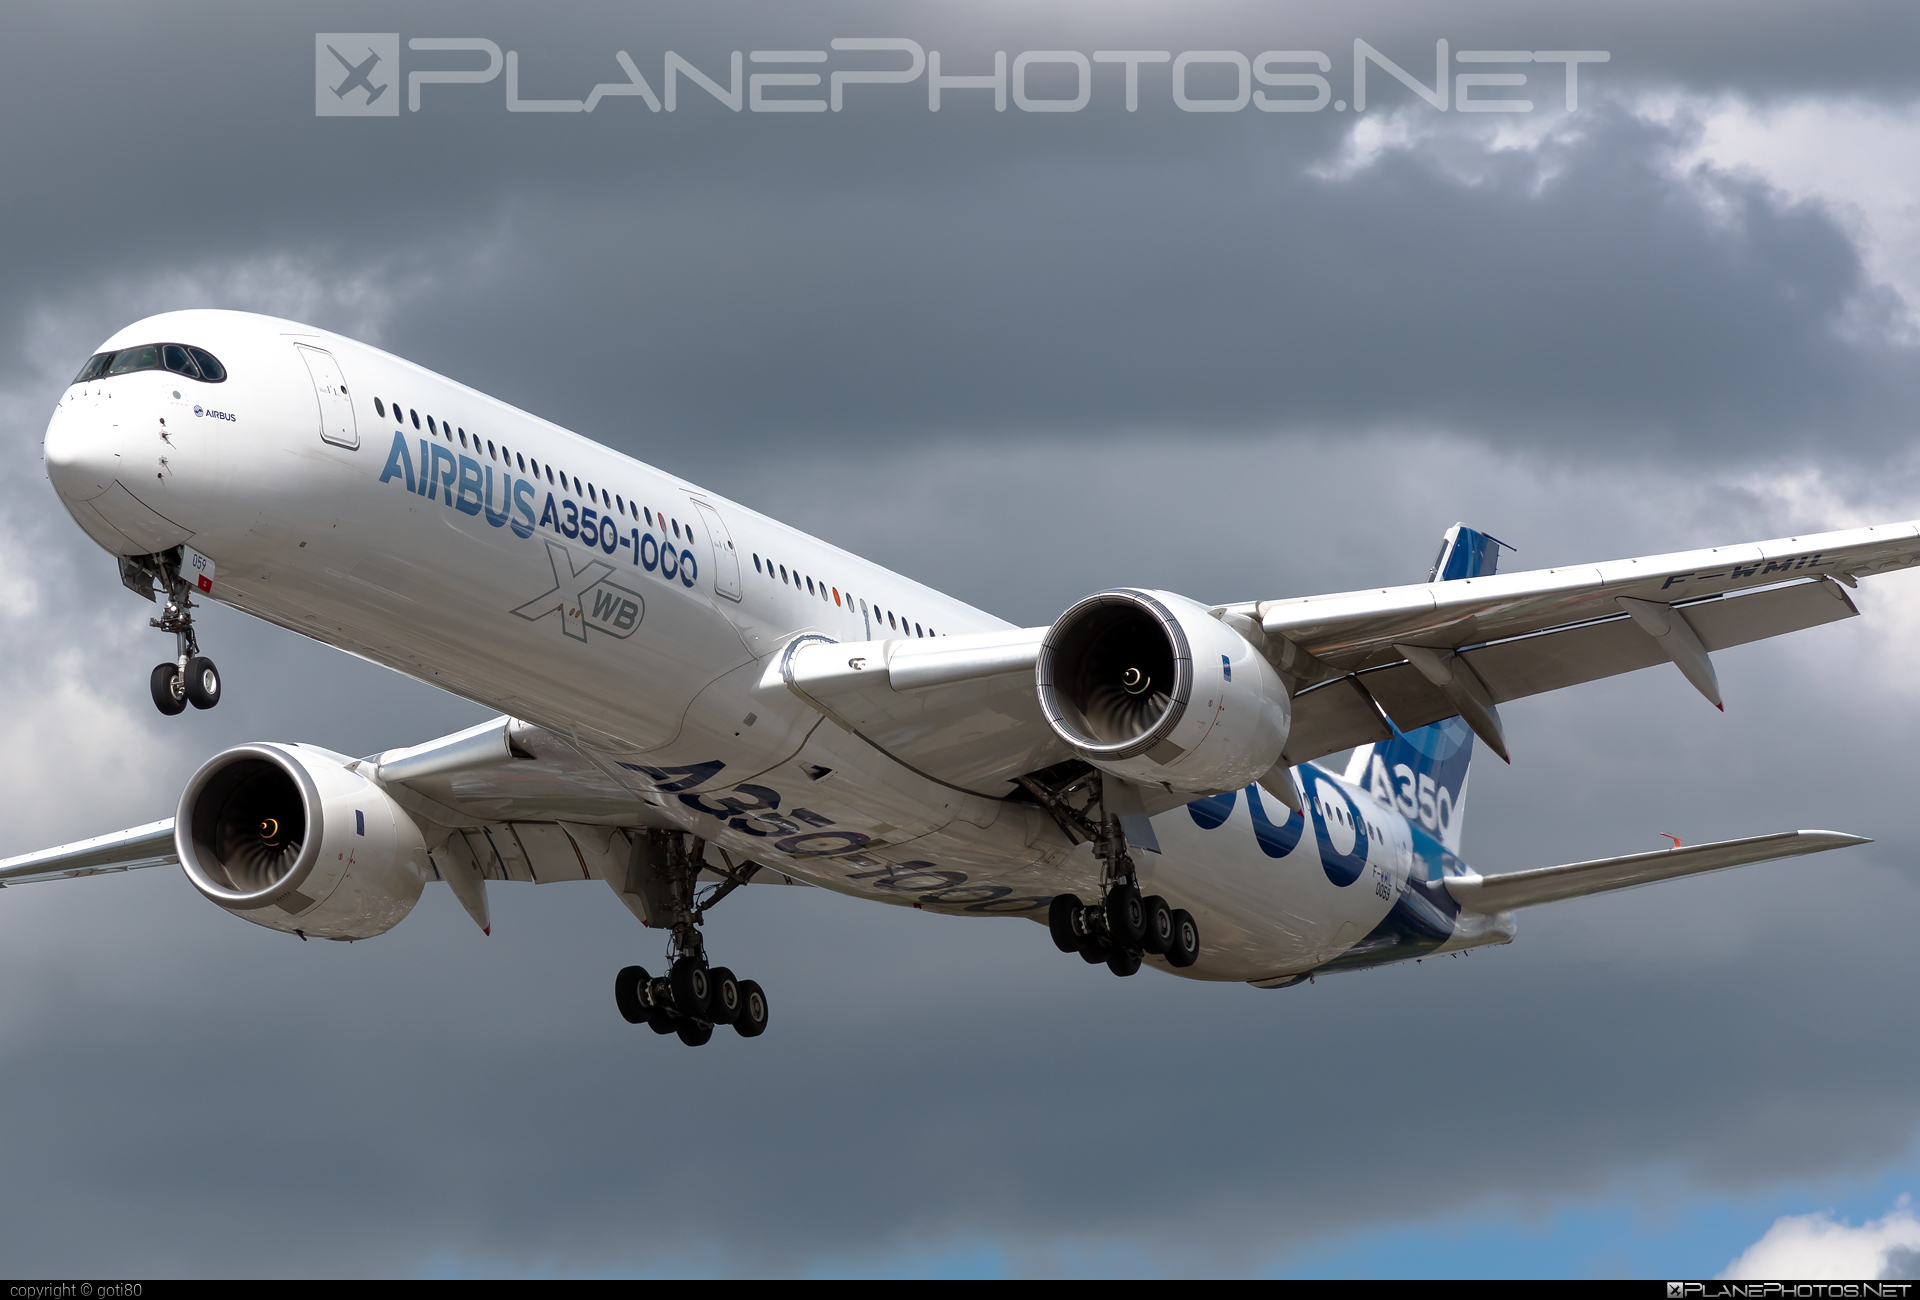 Airbus A350-1041 - F-WMIL operated by Airbus Industrie #a350 #a350family #airbus #airbus350 #xwb